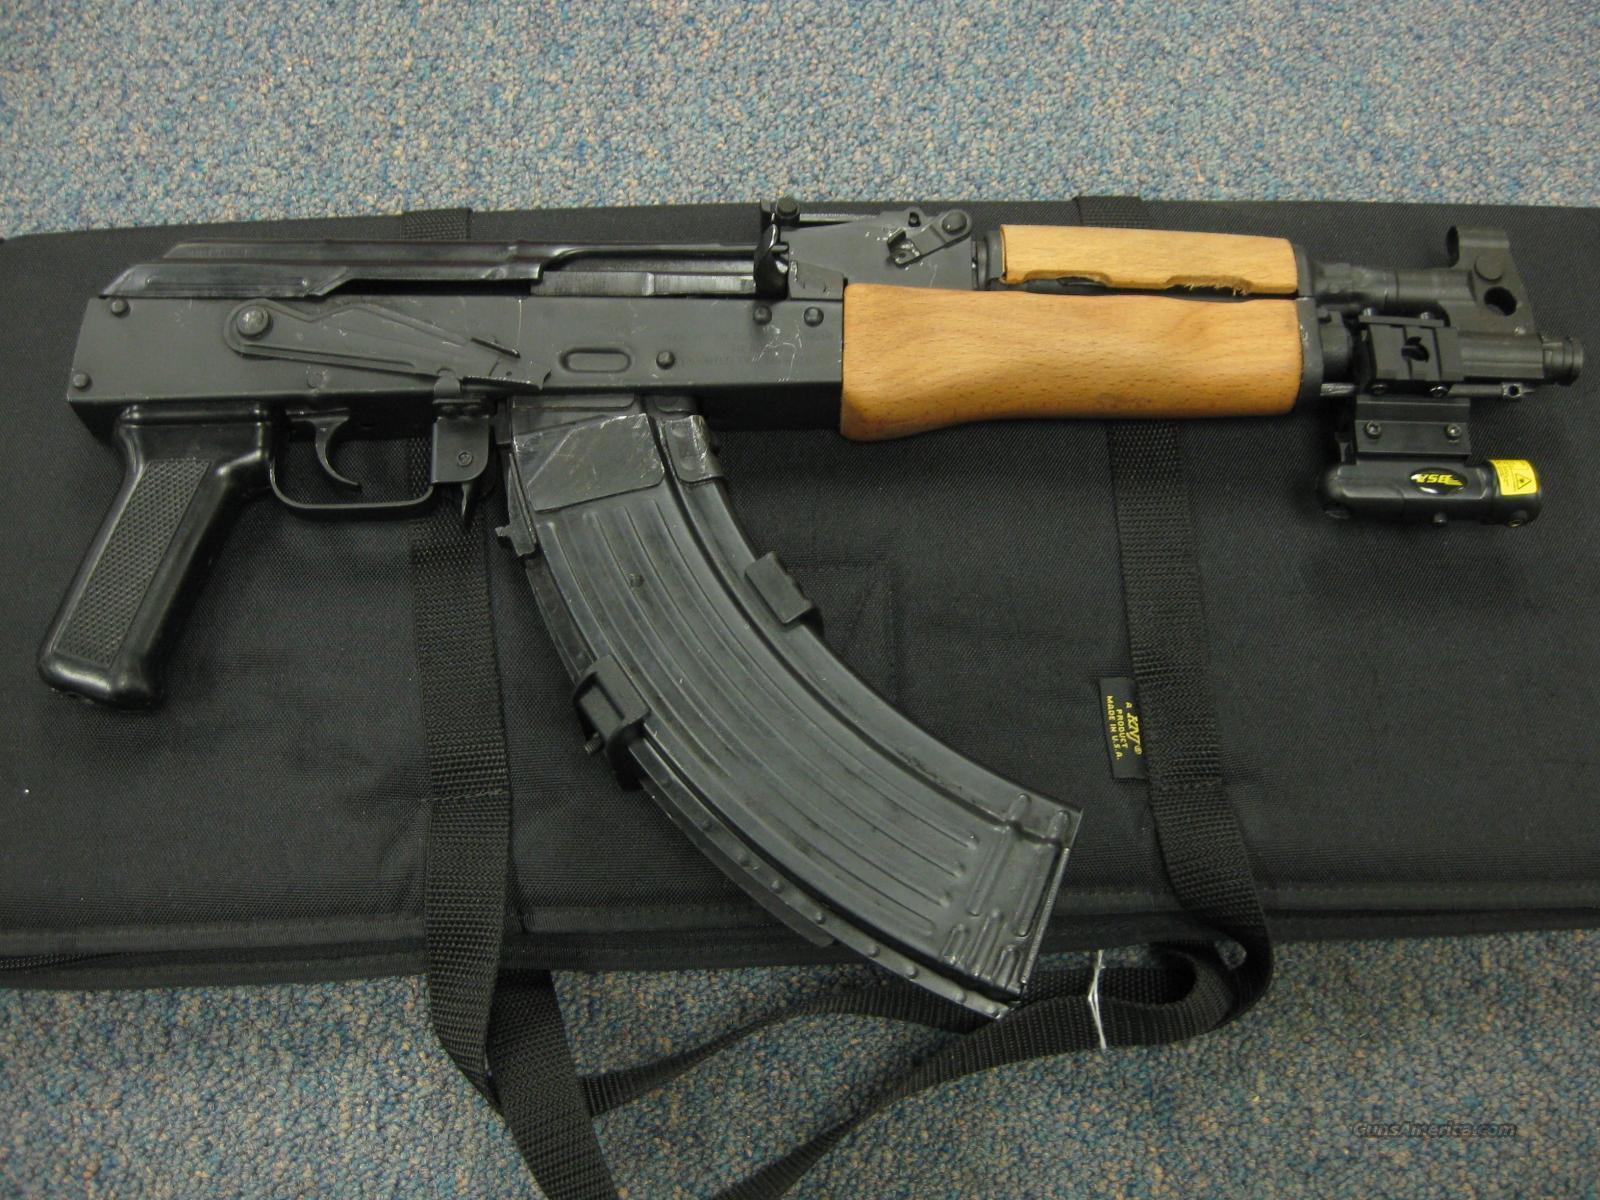 DRACO AK-47 PISTOL W/ LASER SIGHT & CASE